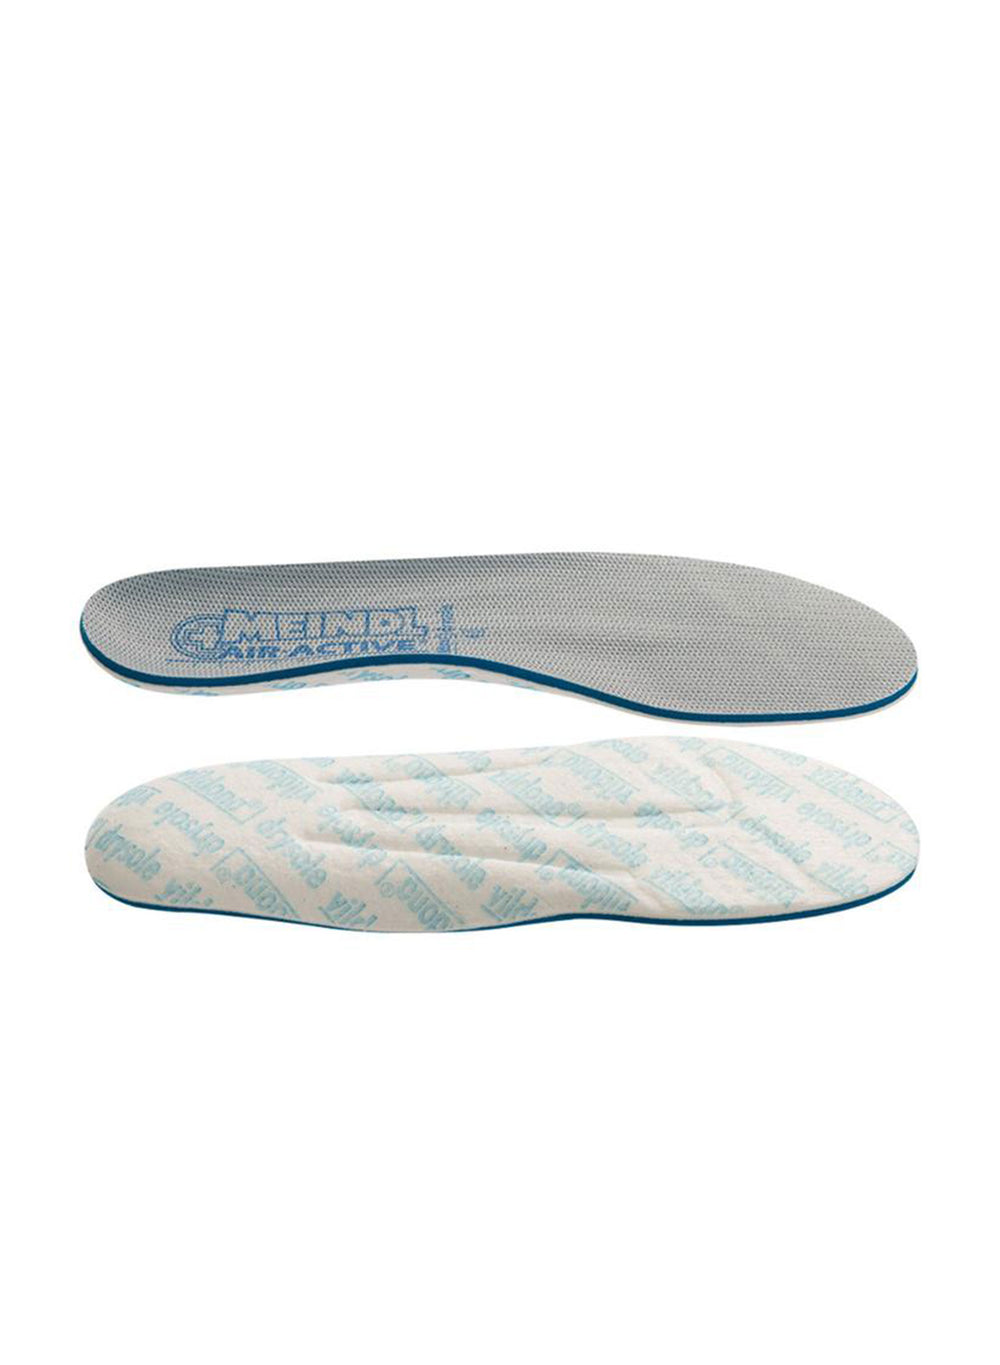 Meindl Air-Active Soft Print Footbed